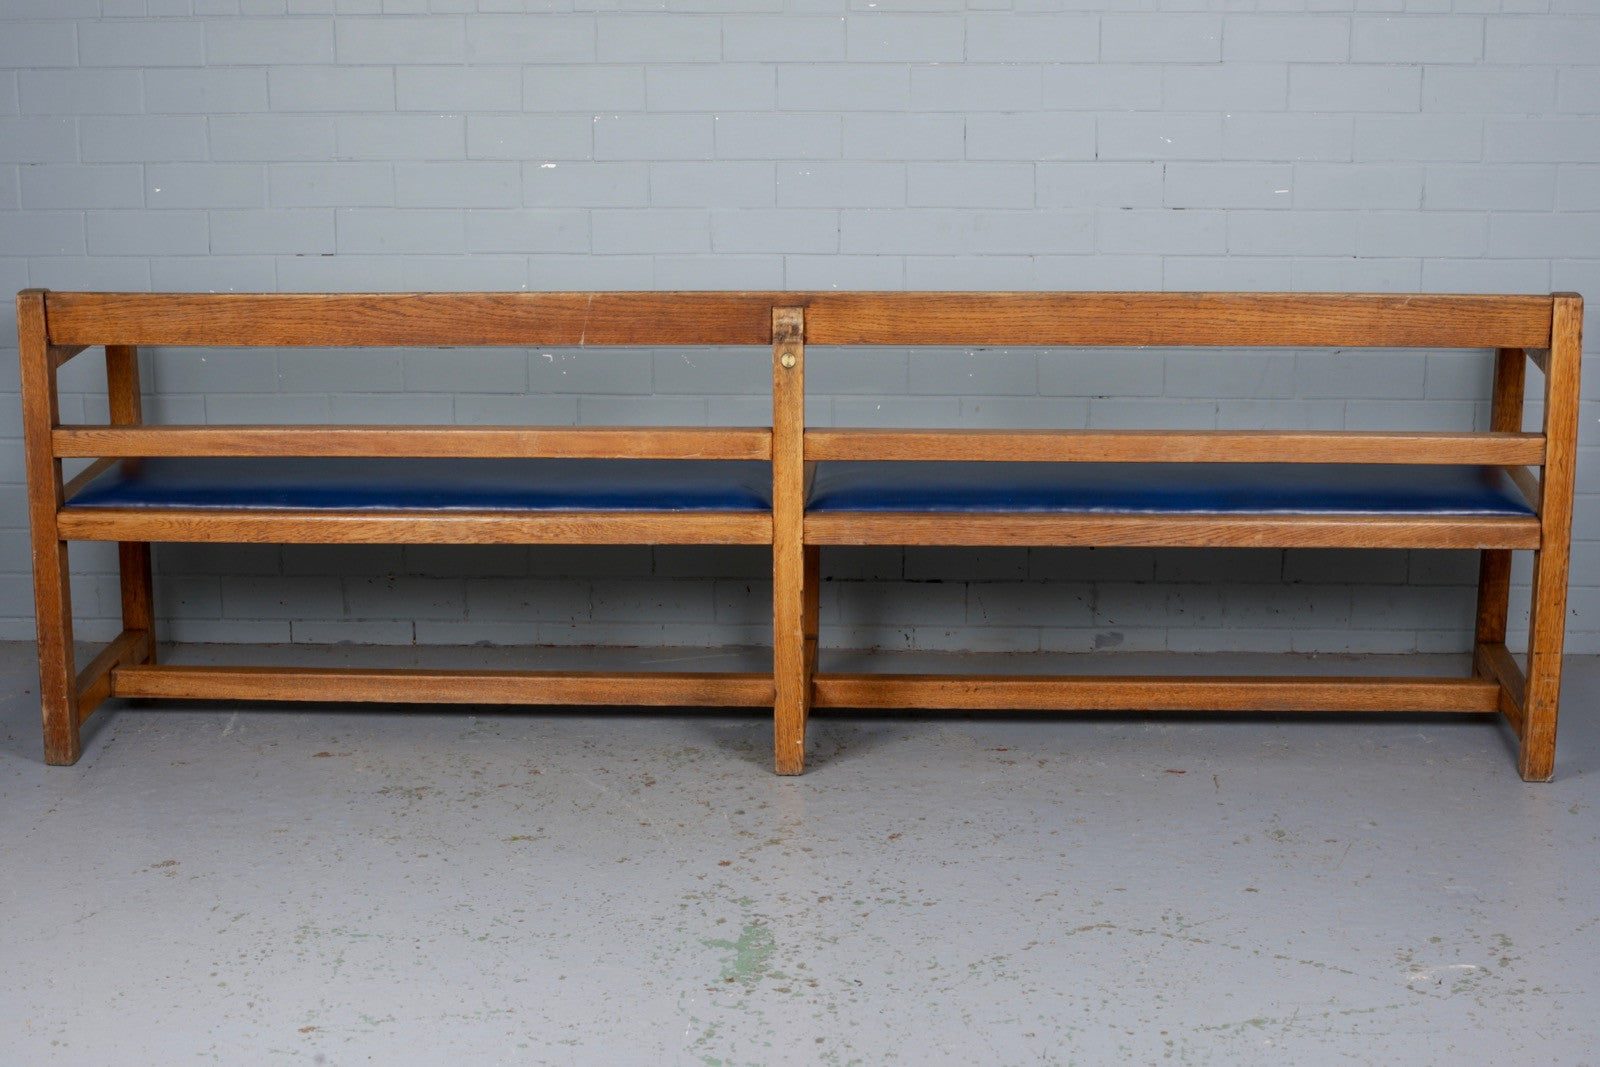 A 1940s large, double oak bench with a blue vinyl upholstered inlay for sale at Industrious Interiors, an online vintage furniture and homeware store based in Nottingham, England.